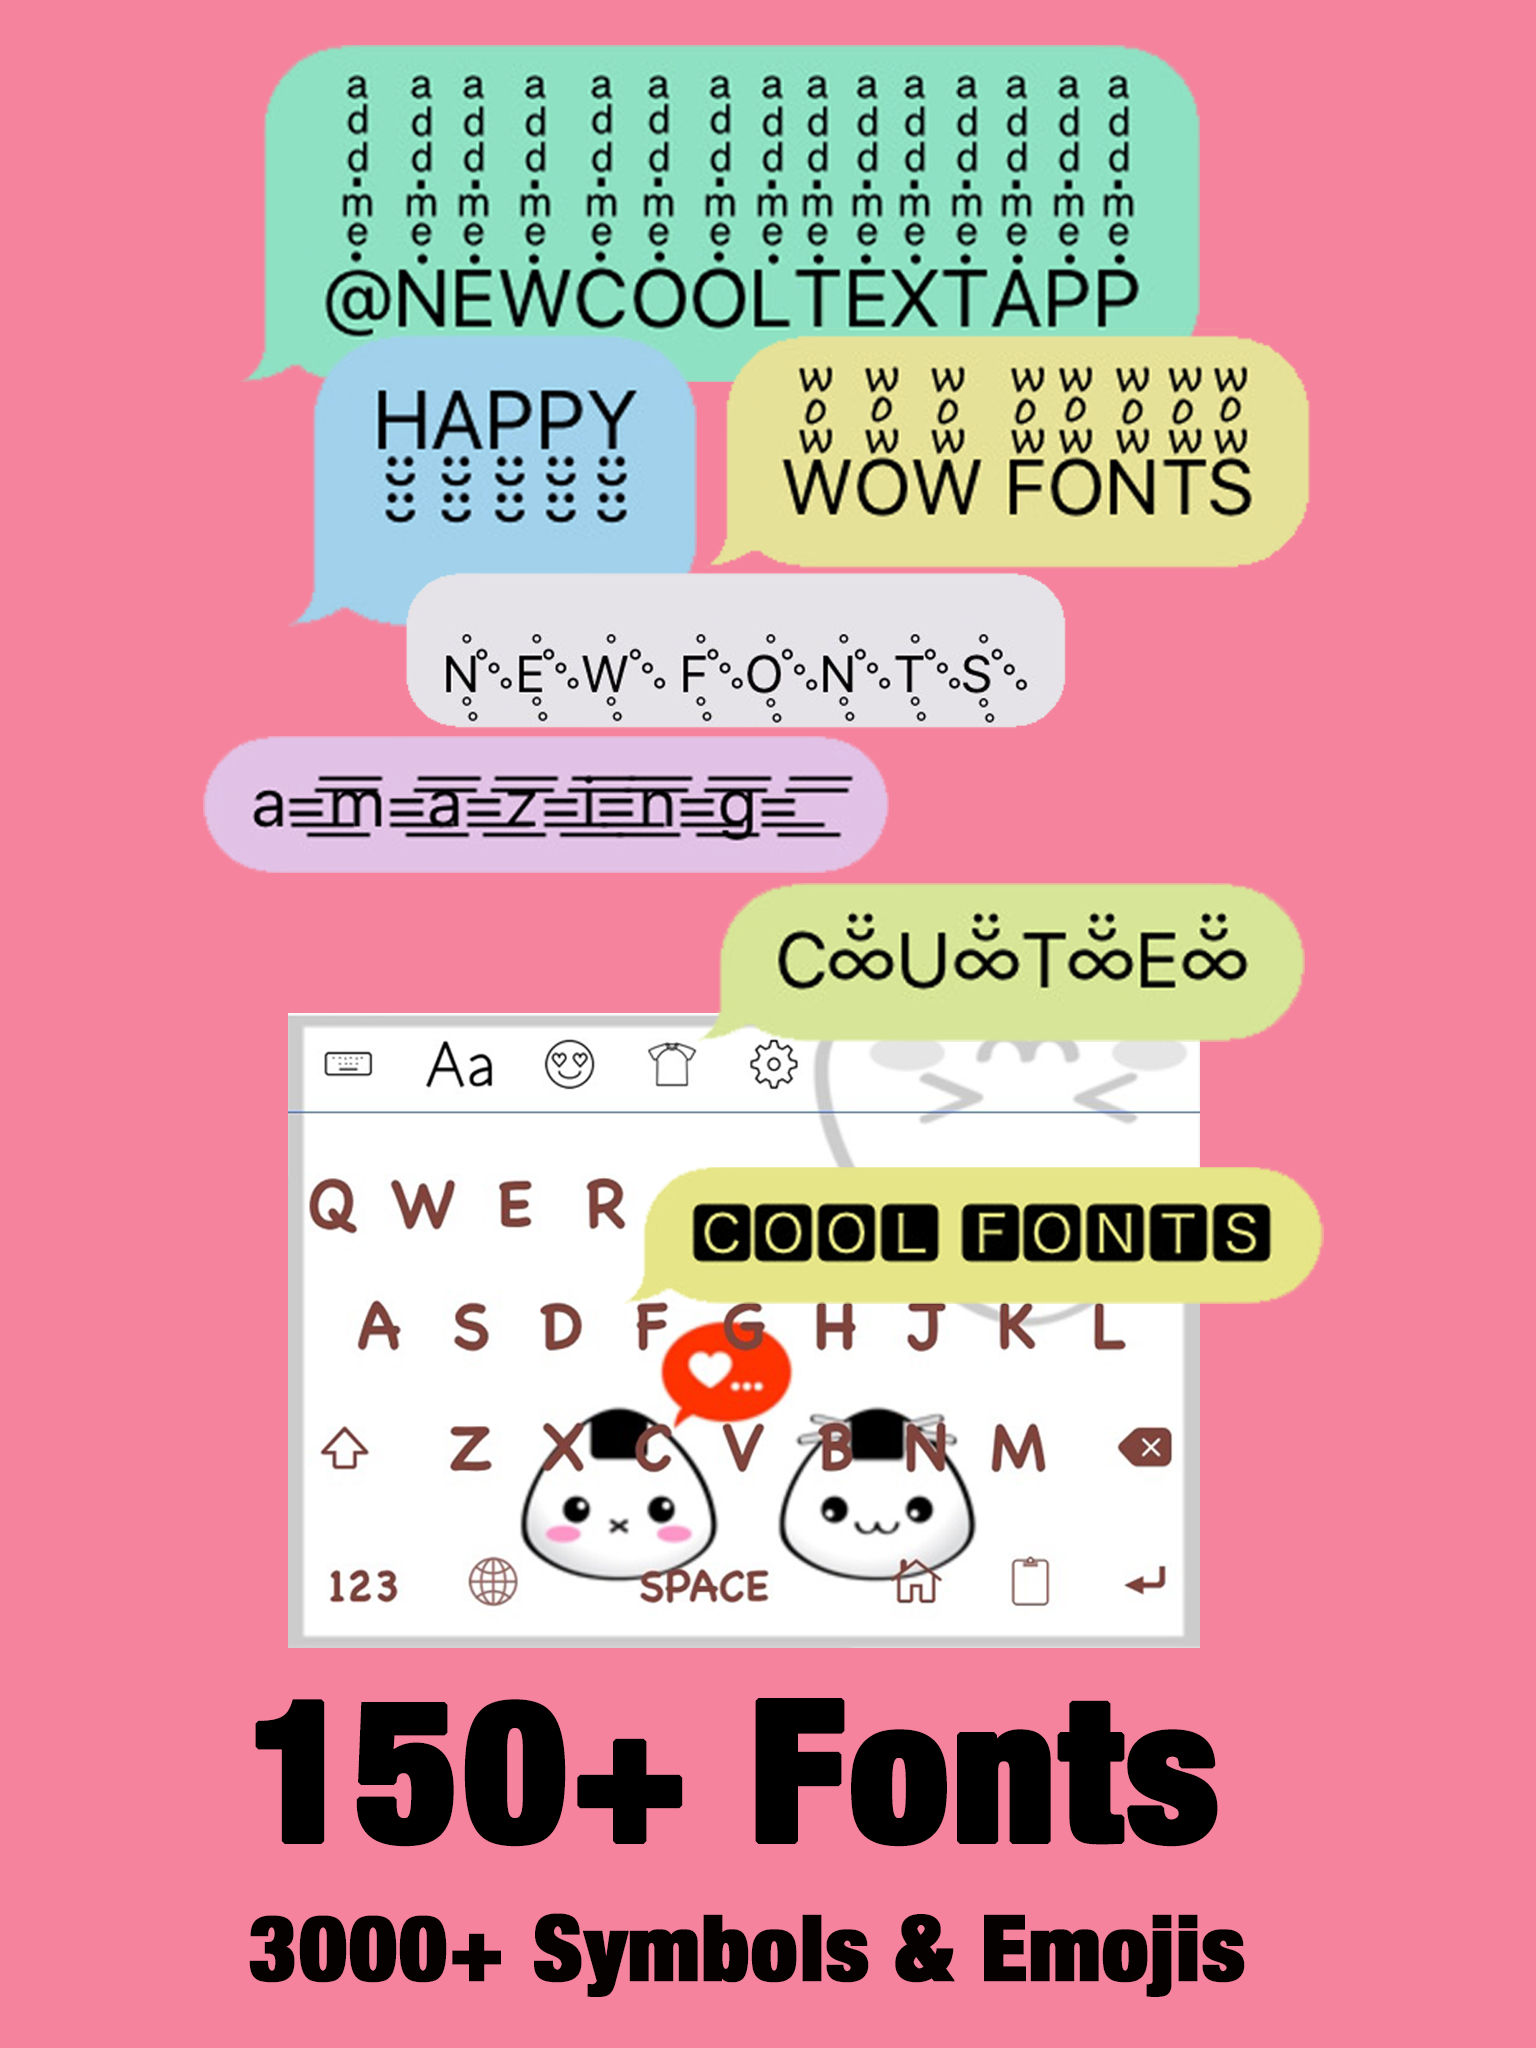 New cool text fonts fxemoji font font keyboard app ranking and app description coolest fonts symbols biocorpaavc Image collections